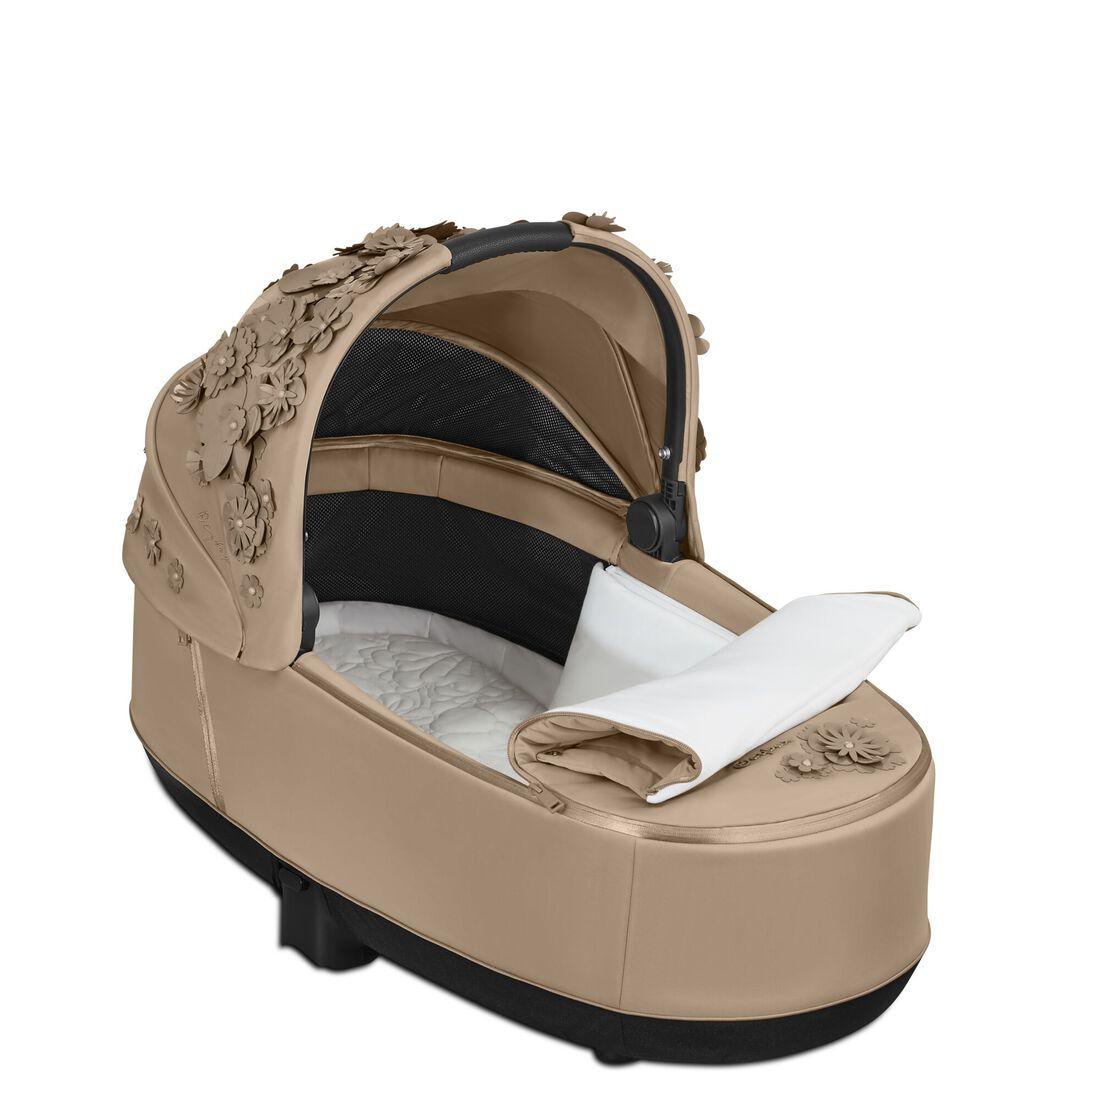 CYBEX Priam Lux Carry Cot - Nude Beige in Nude Beige large image number 3